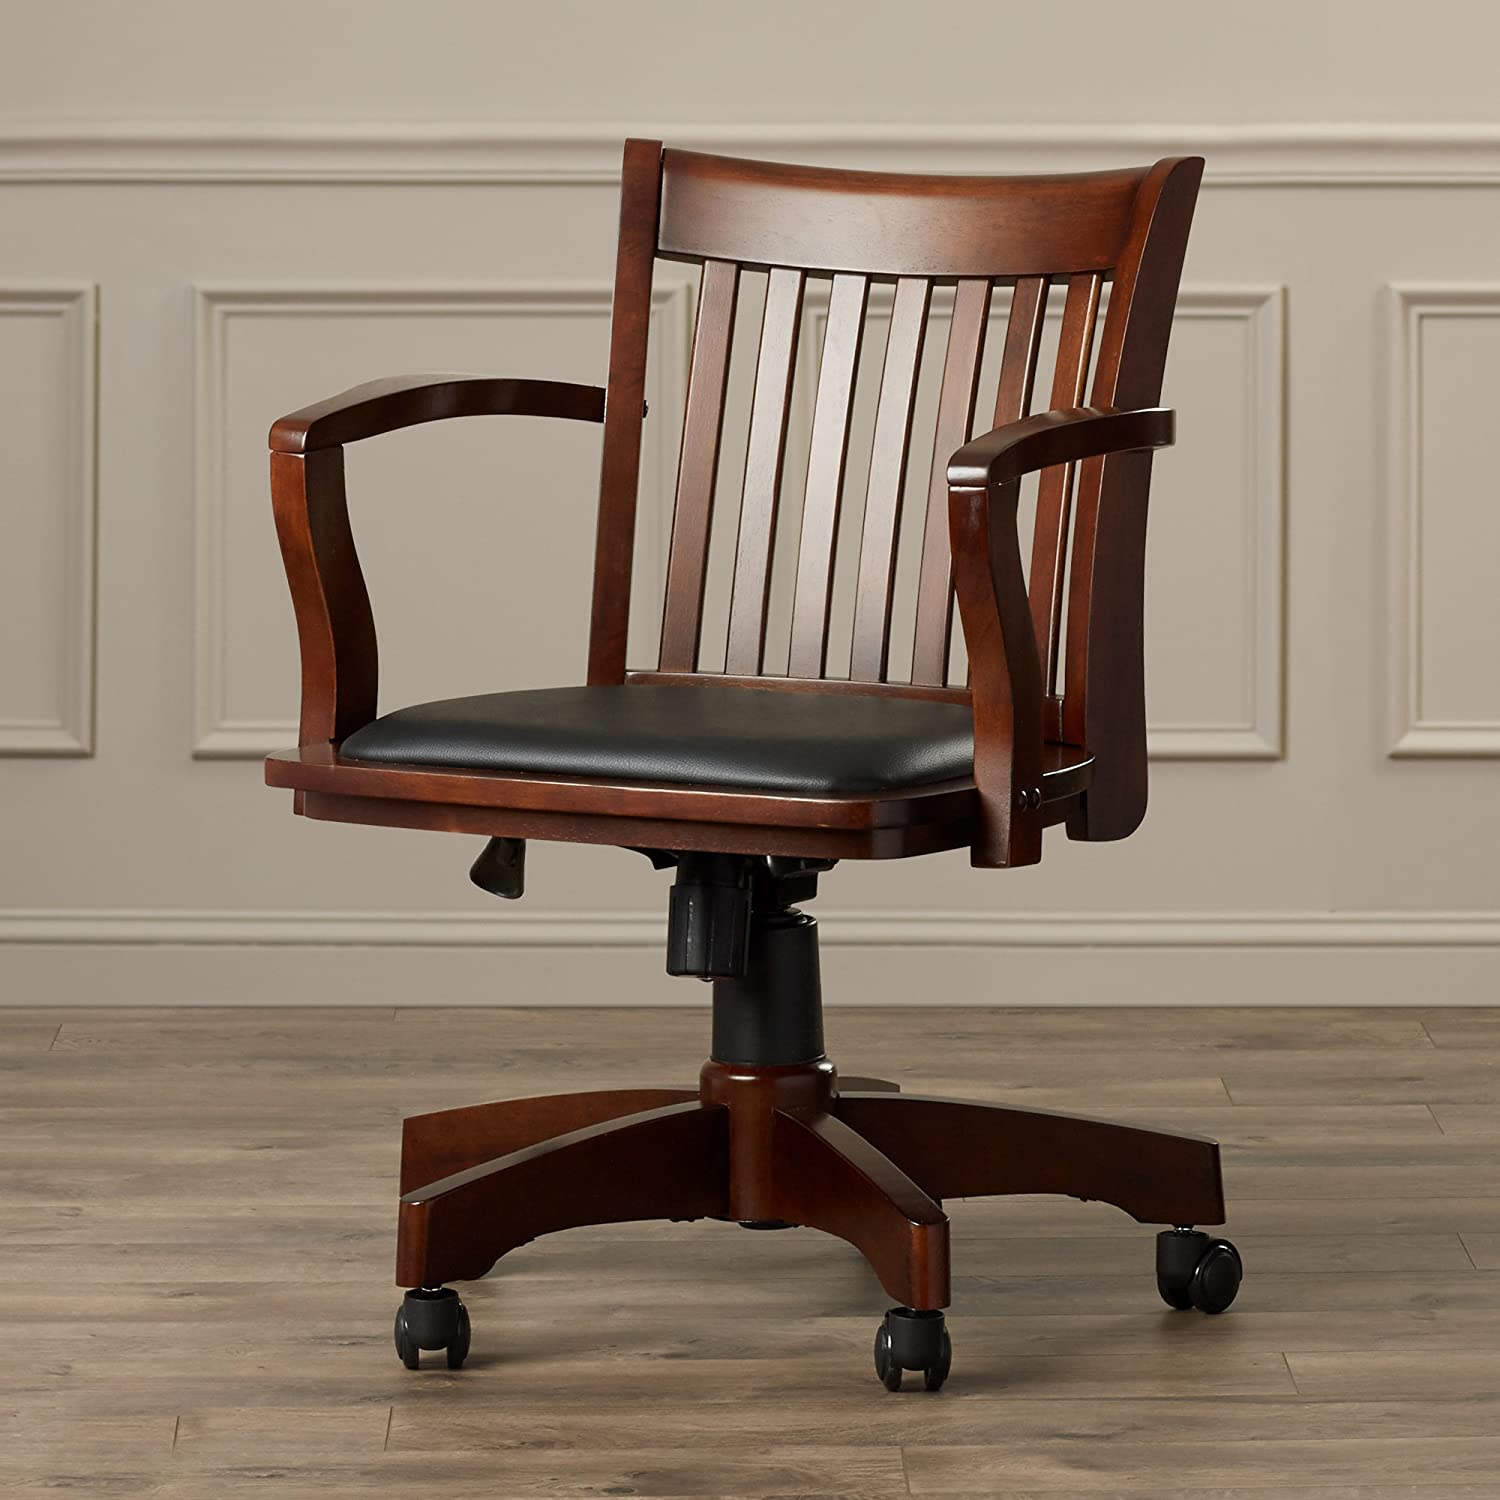 Amazon com wood bankers desk chair with arms adjustable height tilt control swivel seat and dual casters faux leather upholstered seat espresso